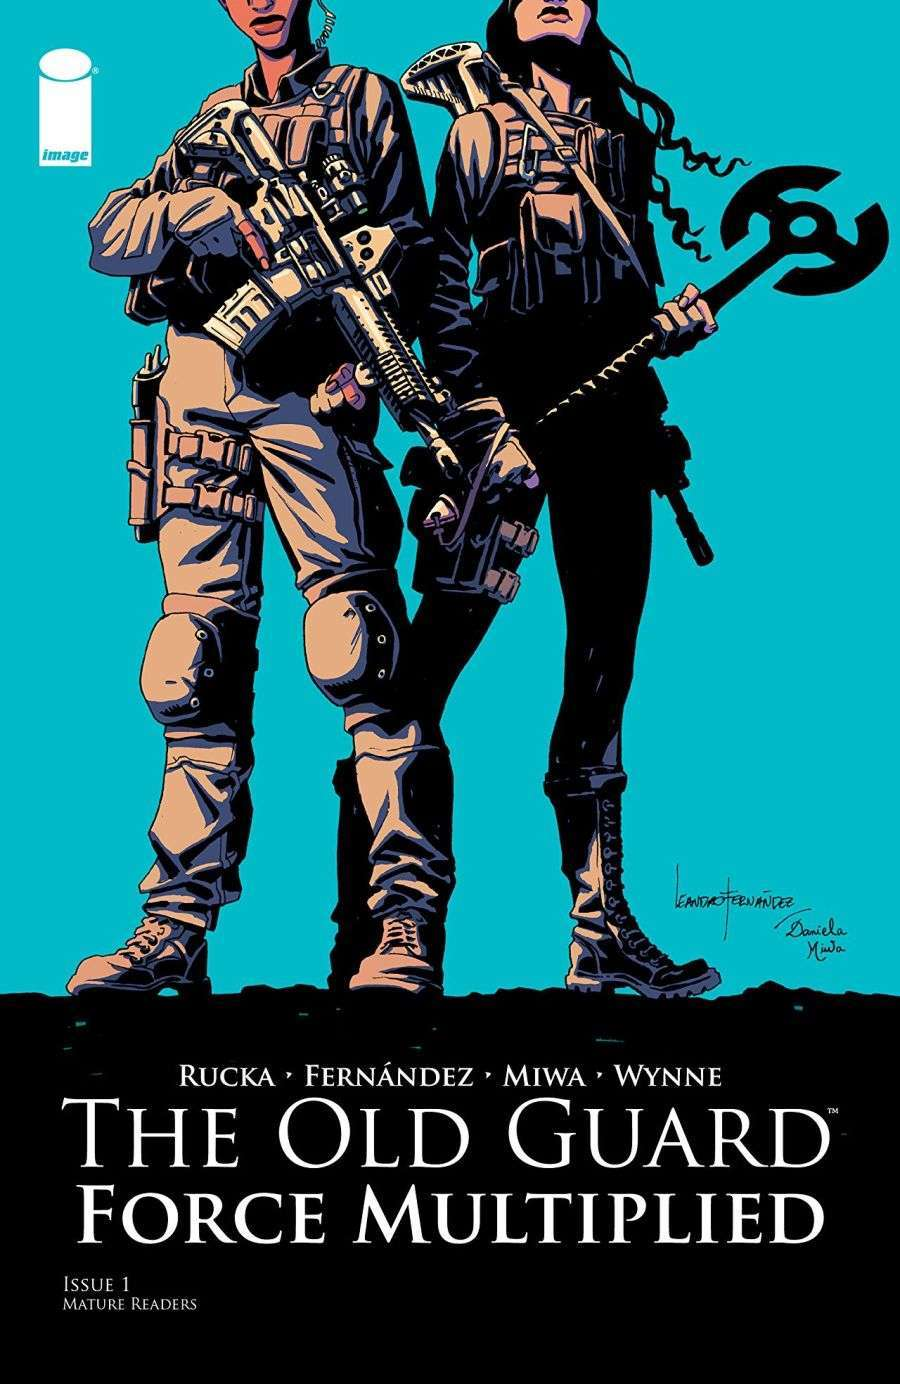 The Old Guard Force Multiplied #1